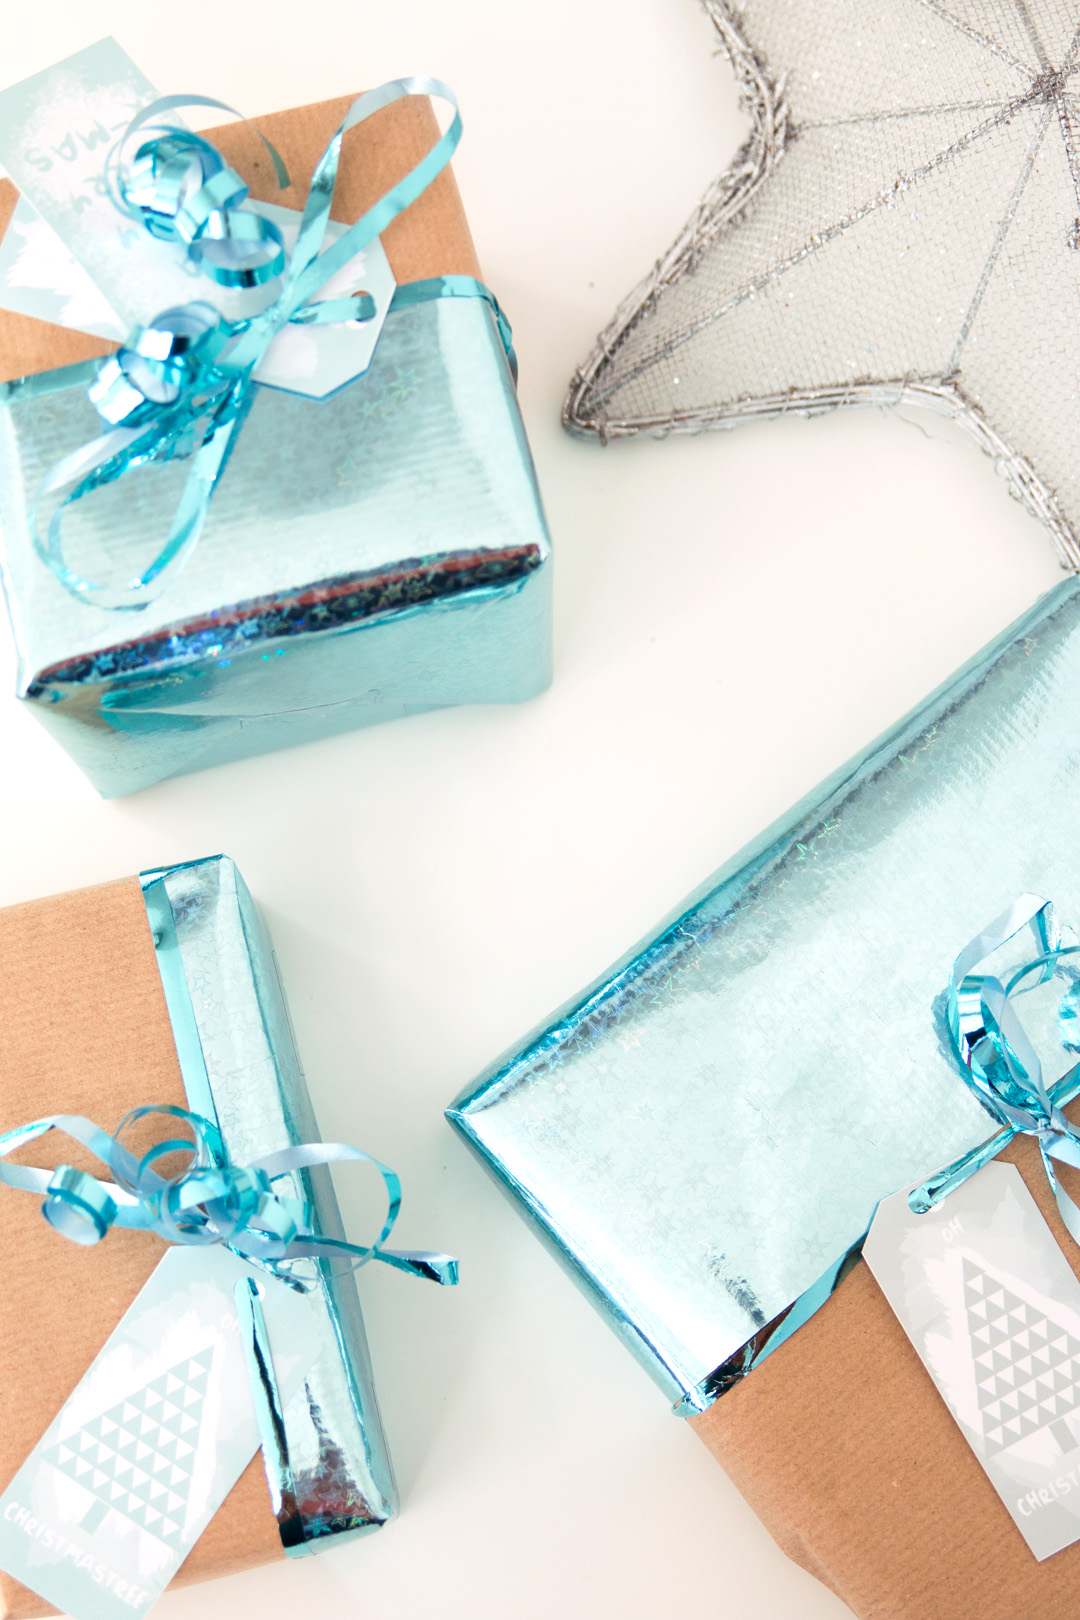 Wrap it up! Some Ideas & Free Gift Tag Printable